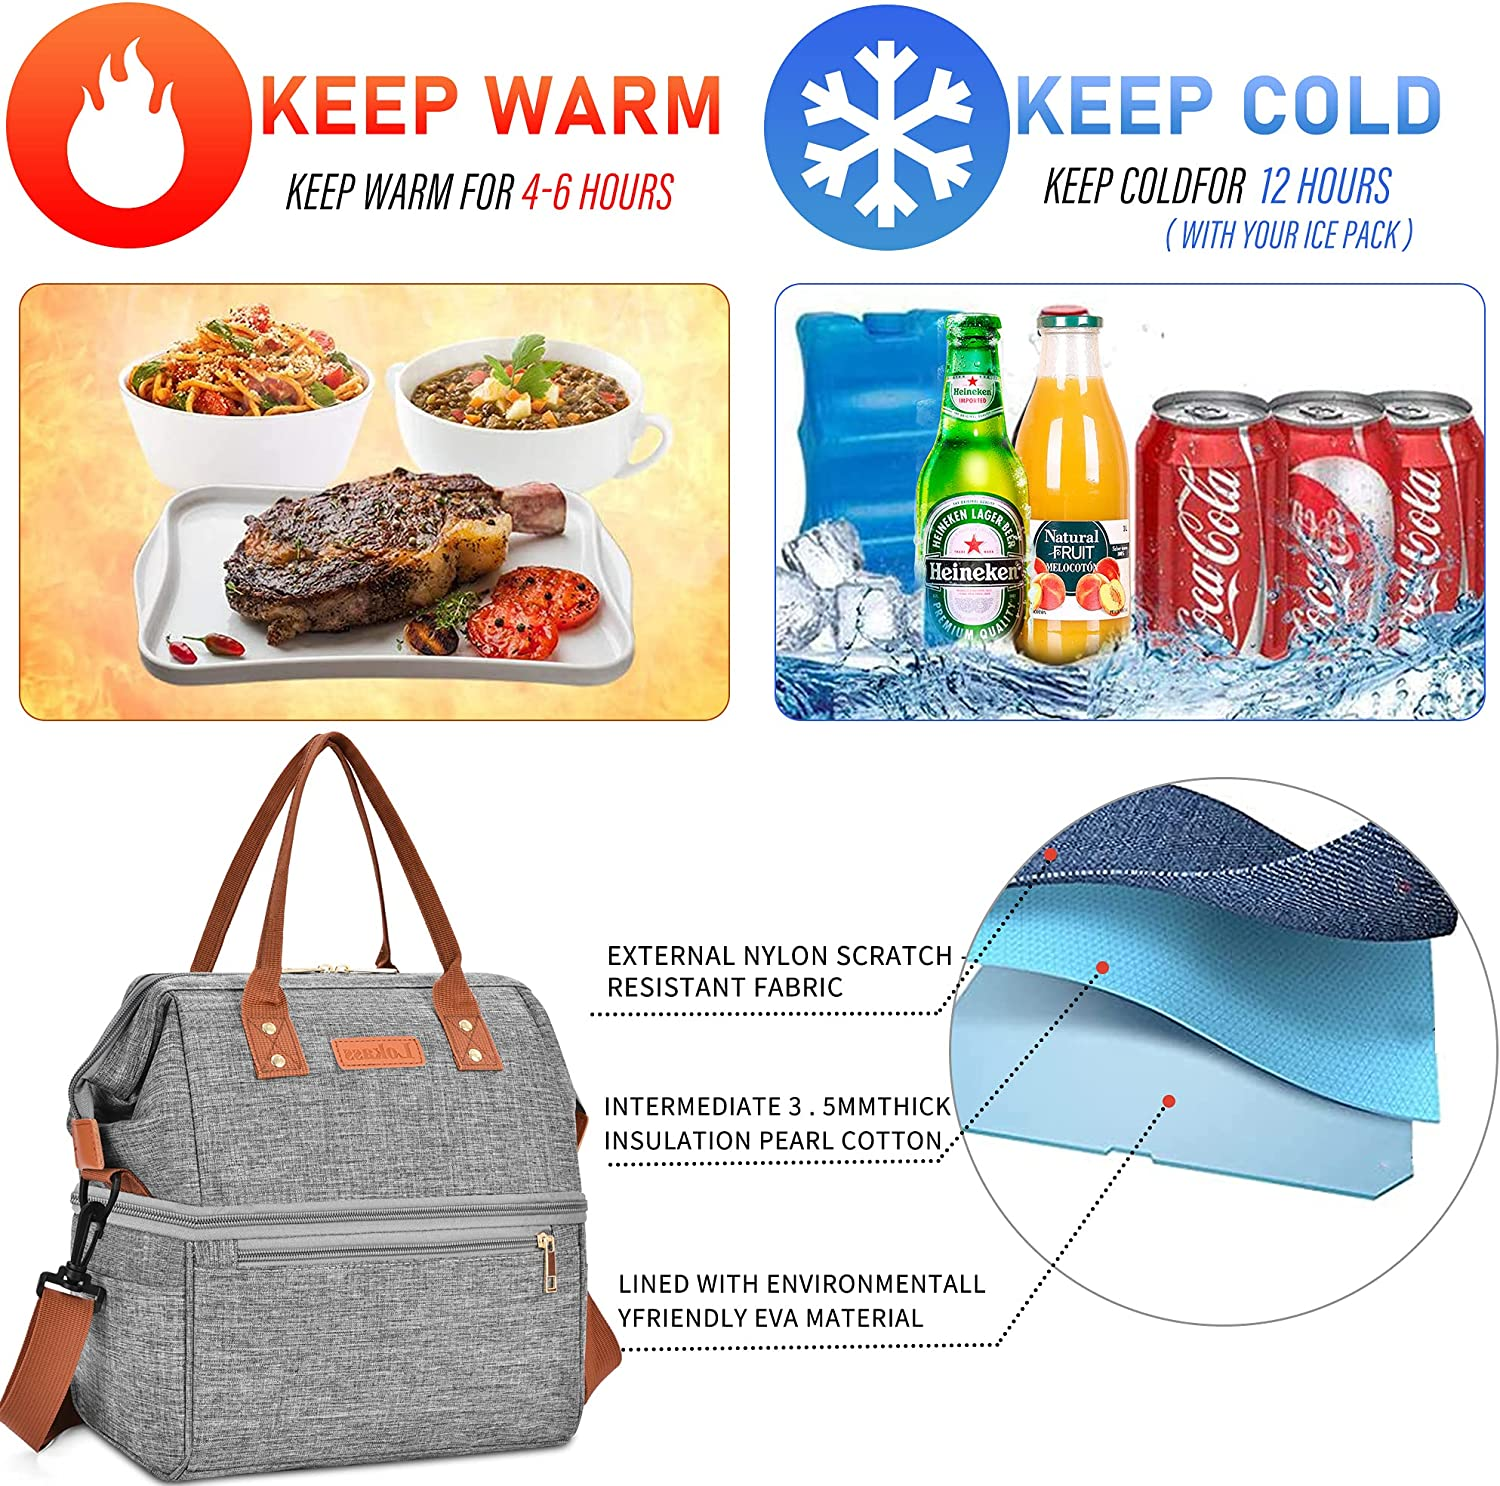 DTBG Lunch Bags for Women Wide Open Insulated Lunch Box With Double Deck Large Capacity Cooler Tote Bag With Removable Shoulder Strap Lunch Organizer For Men/Outdoor/Work(Grey)